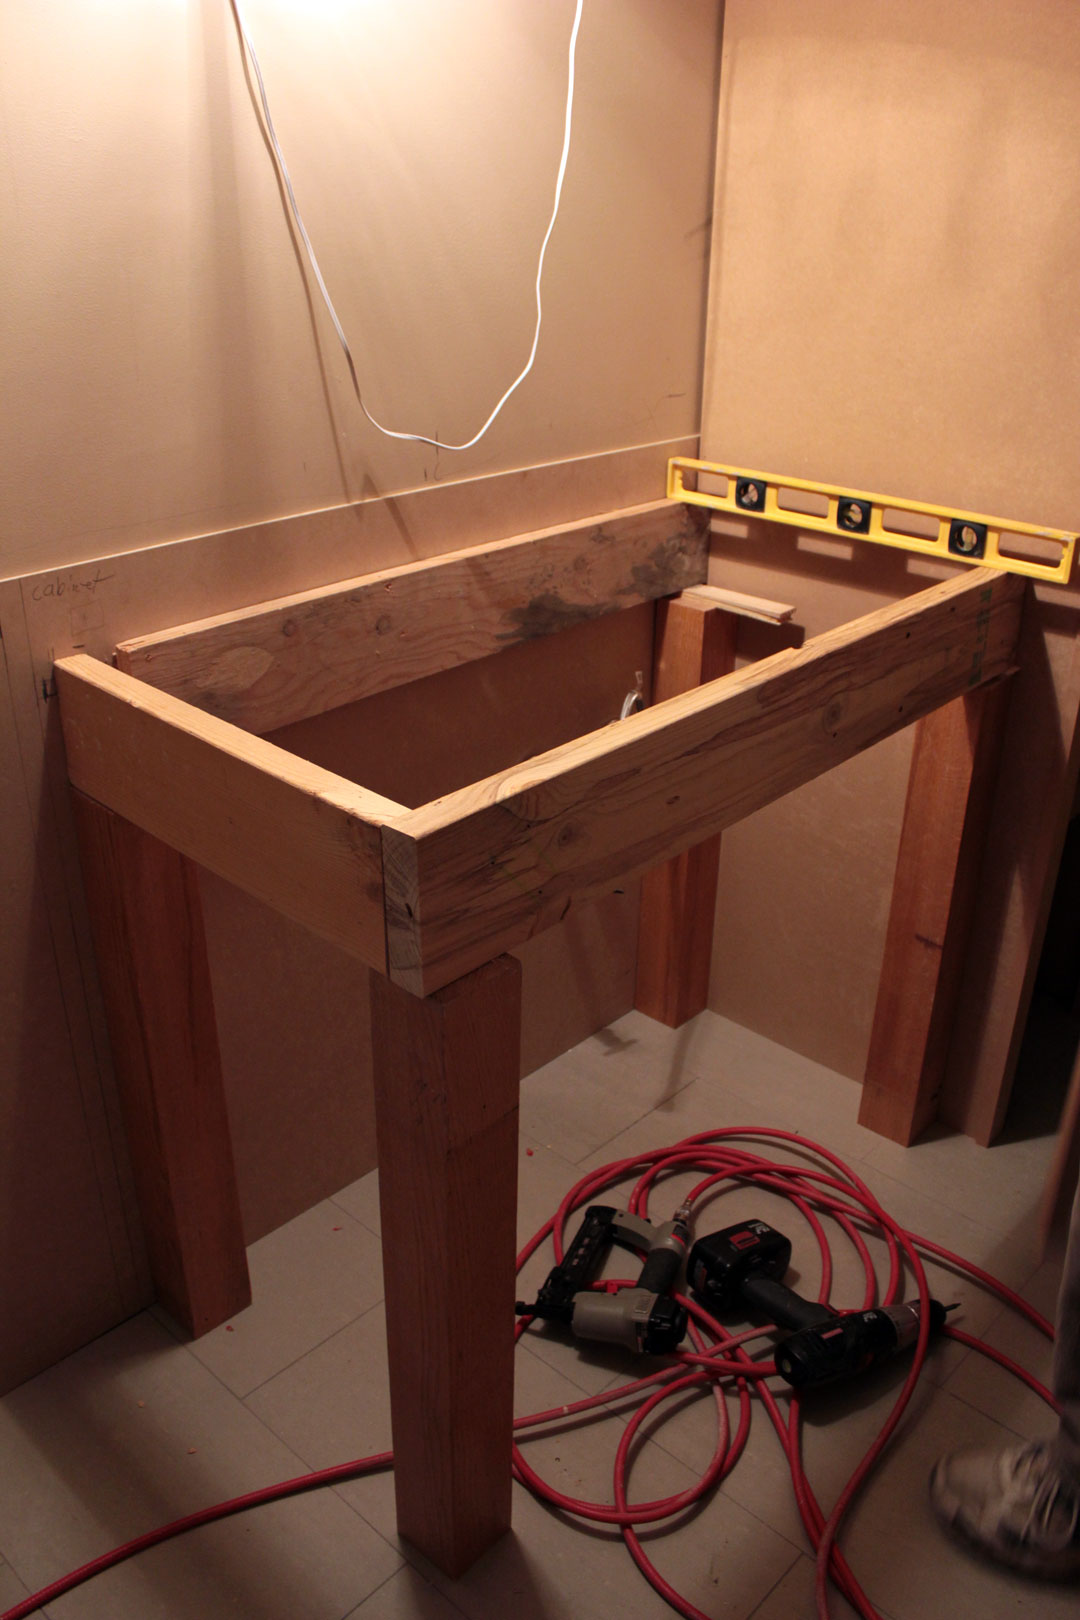 Bathroom Vanity Plans: Open Shelf Vanity Plans PDF Woodworking